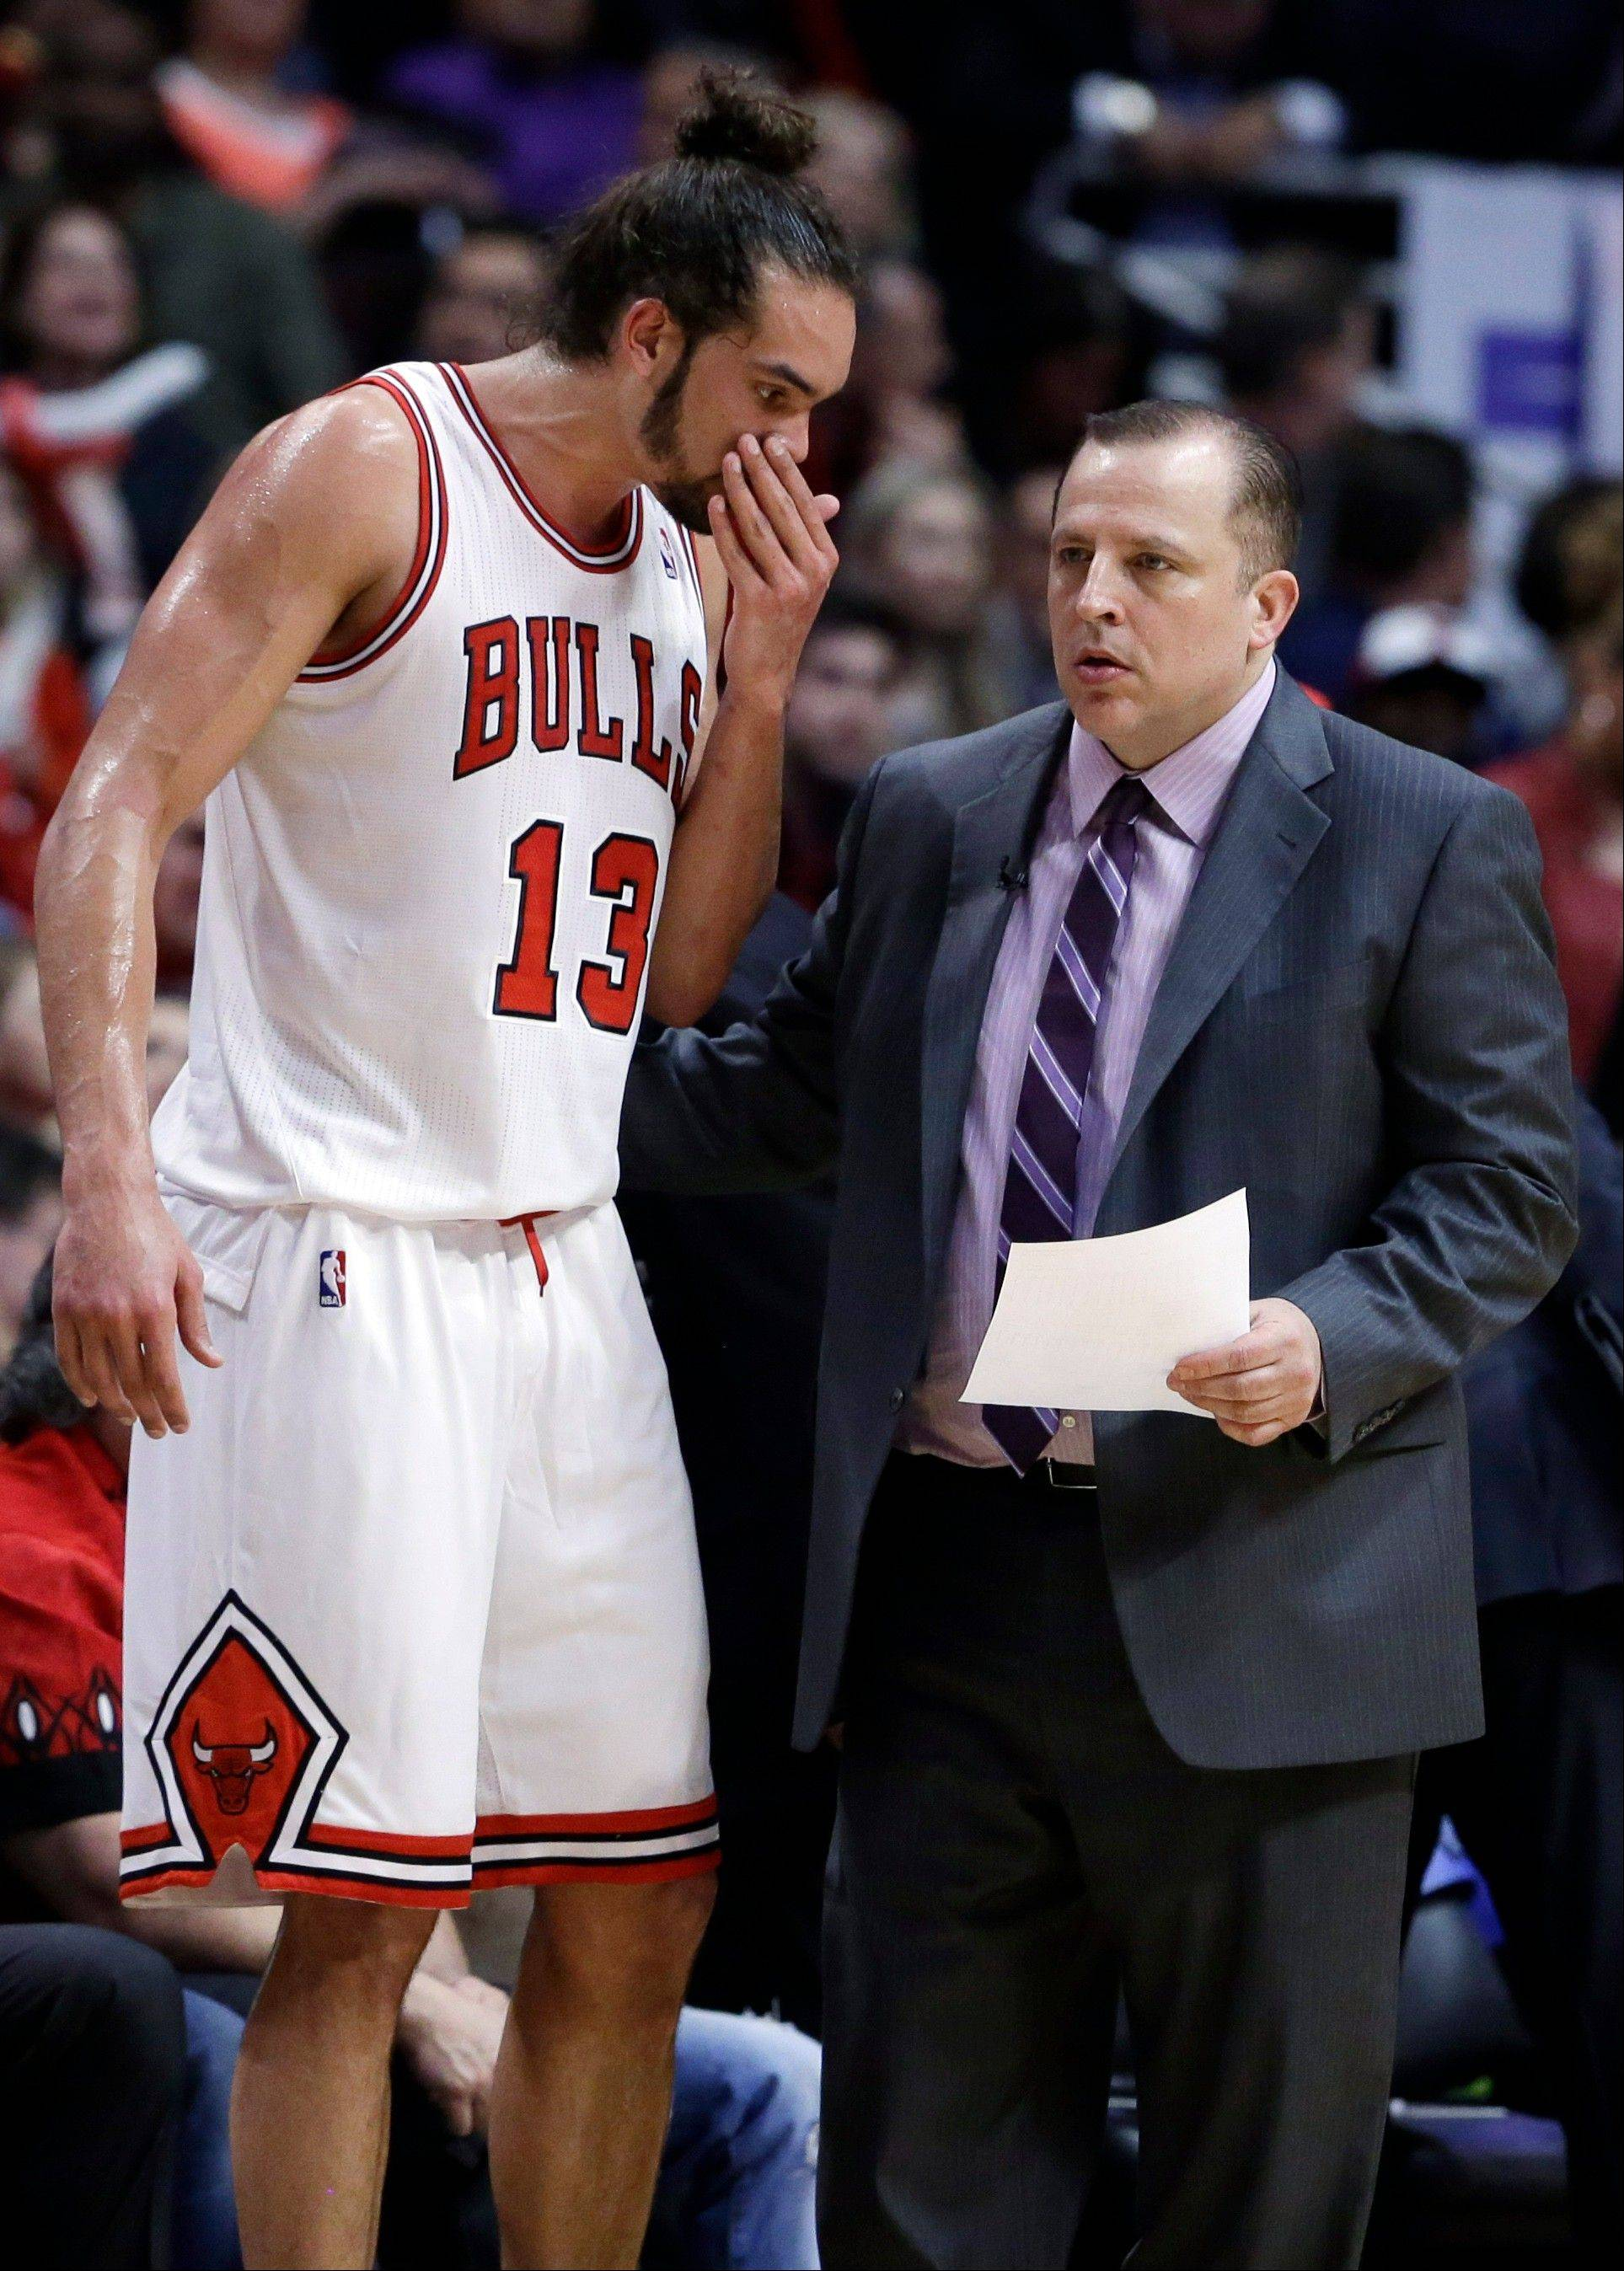 Chicago Bulls center Joakim Noah, left, talks with head coach Tom Thibodeau during the first half in Game 6 of their first-round NBA basketball playoff series against the Brooklyn Nets in Chicago, Thursday, May 2, 2013.